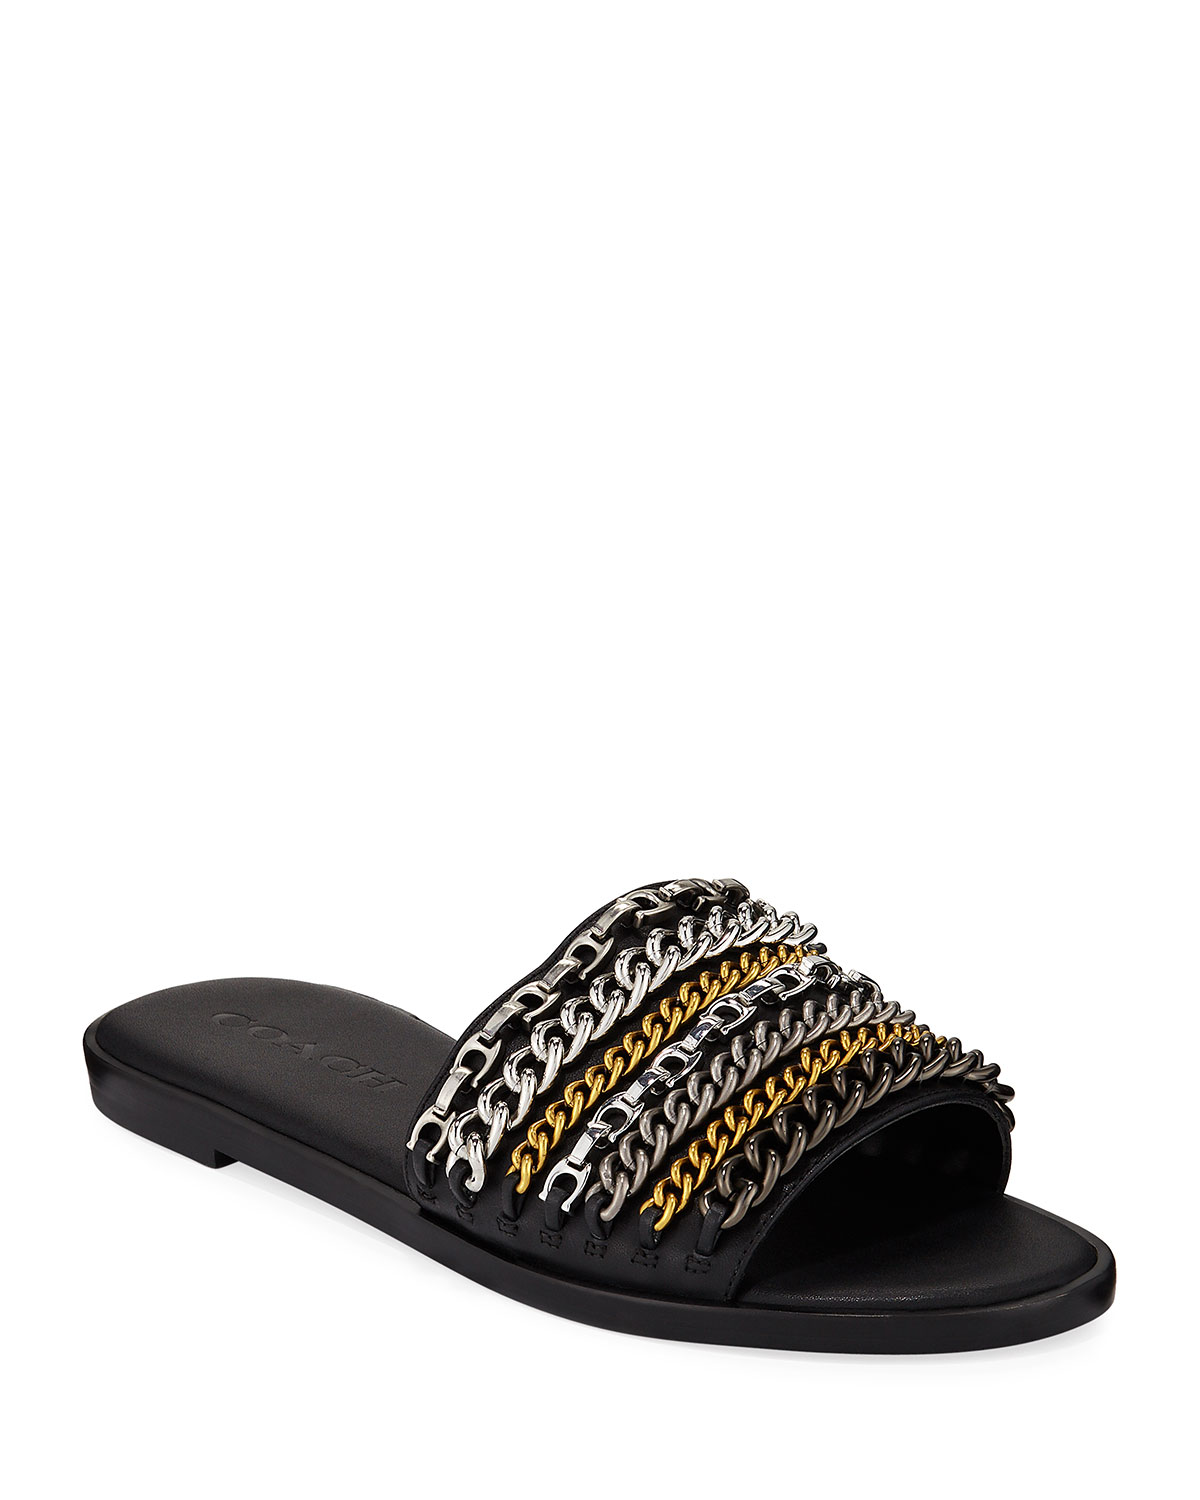 Hayden Leather Chains Flat Slide Sandals